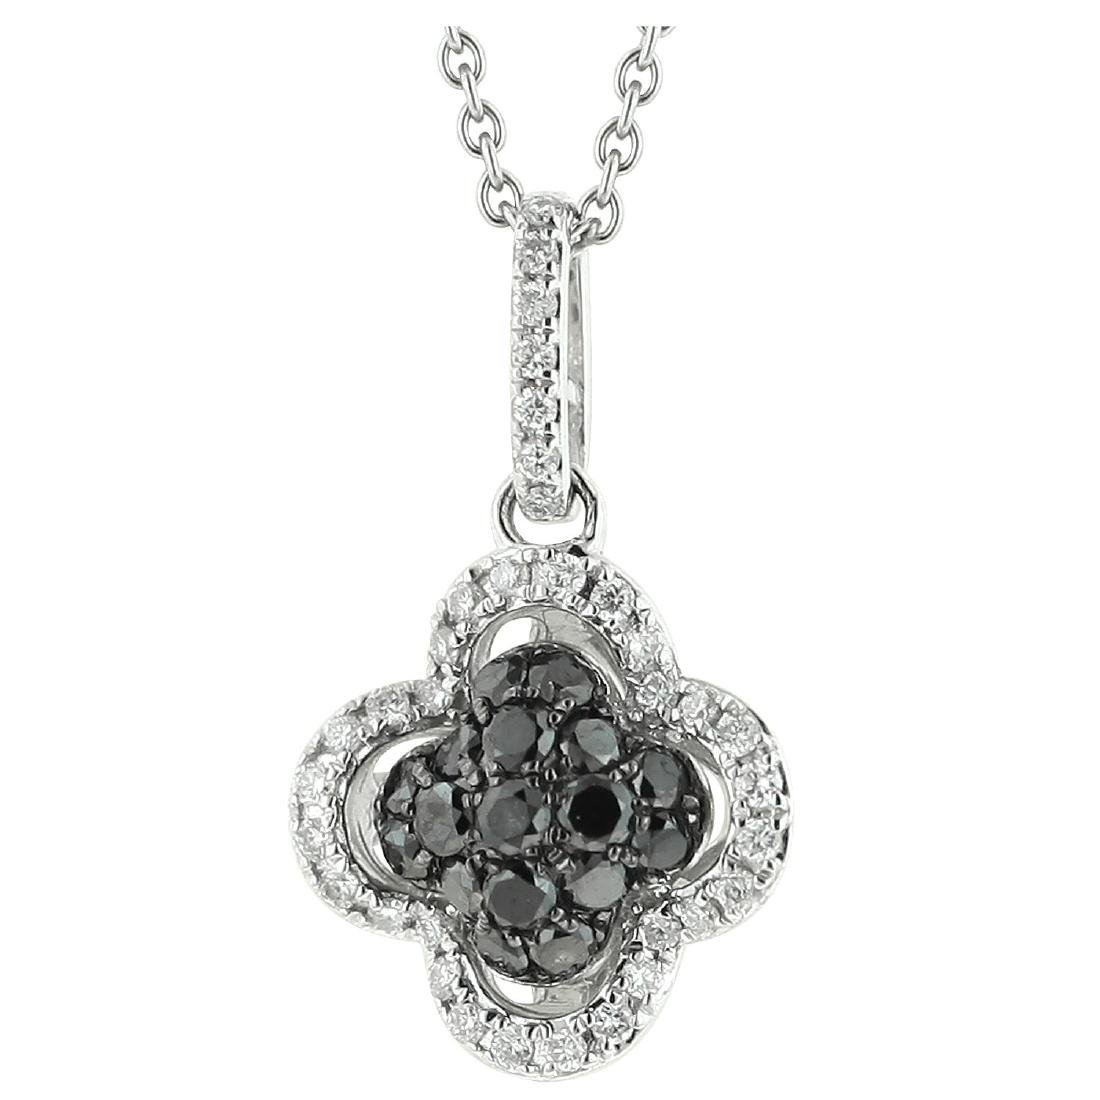 18k White Gold Diamond Pendant With Chain